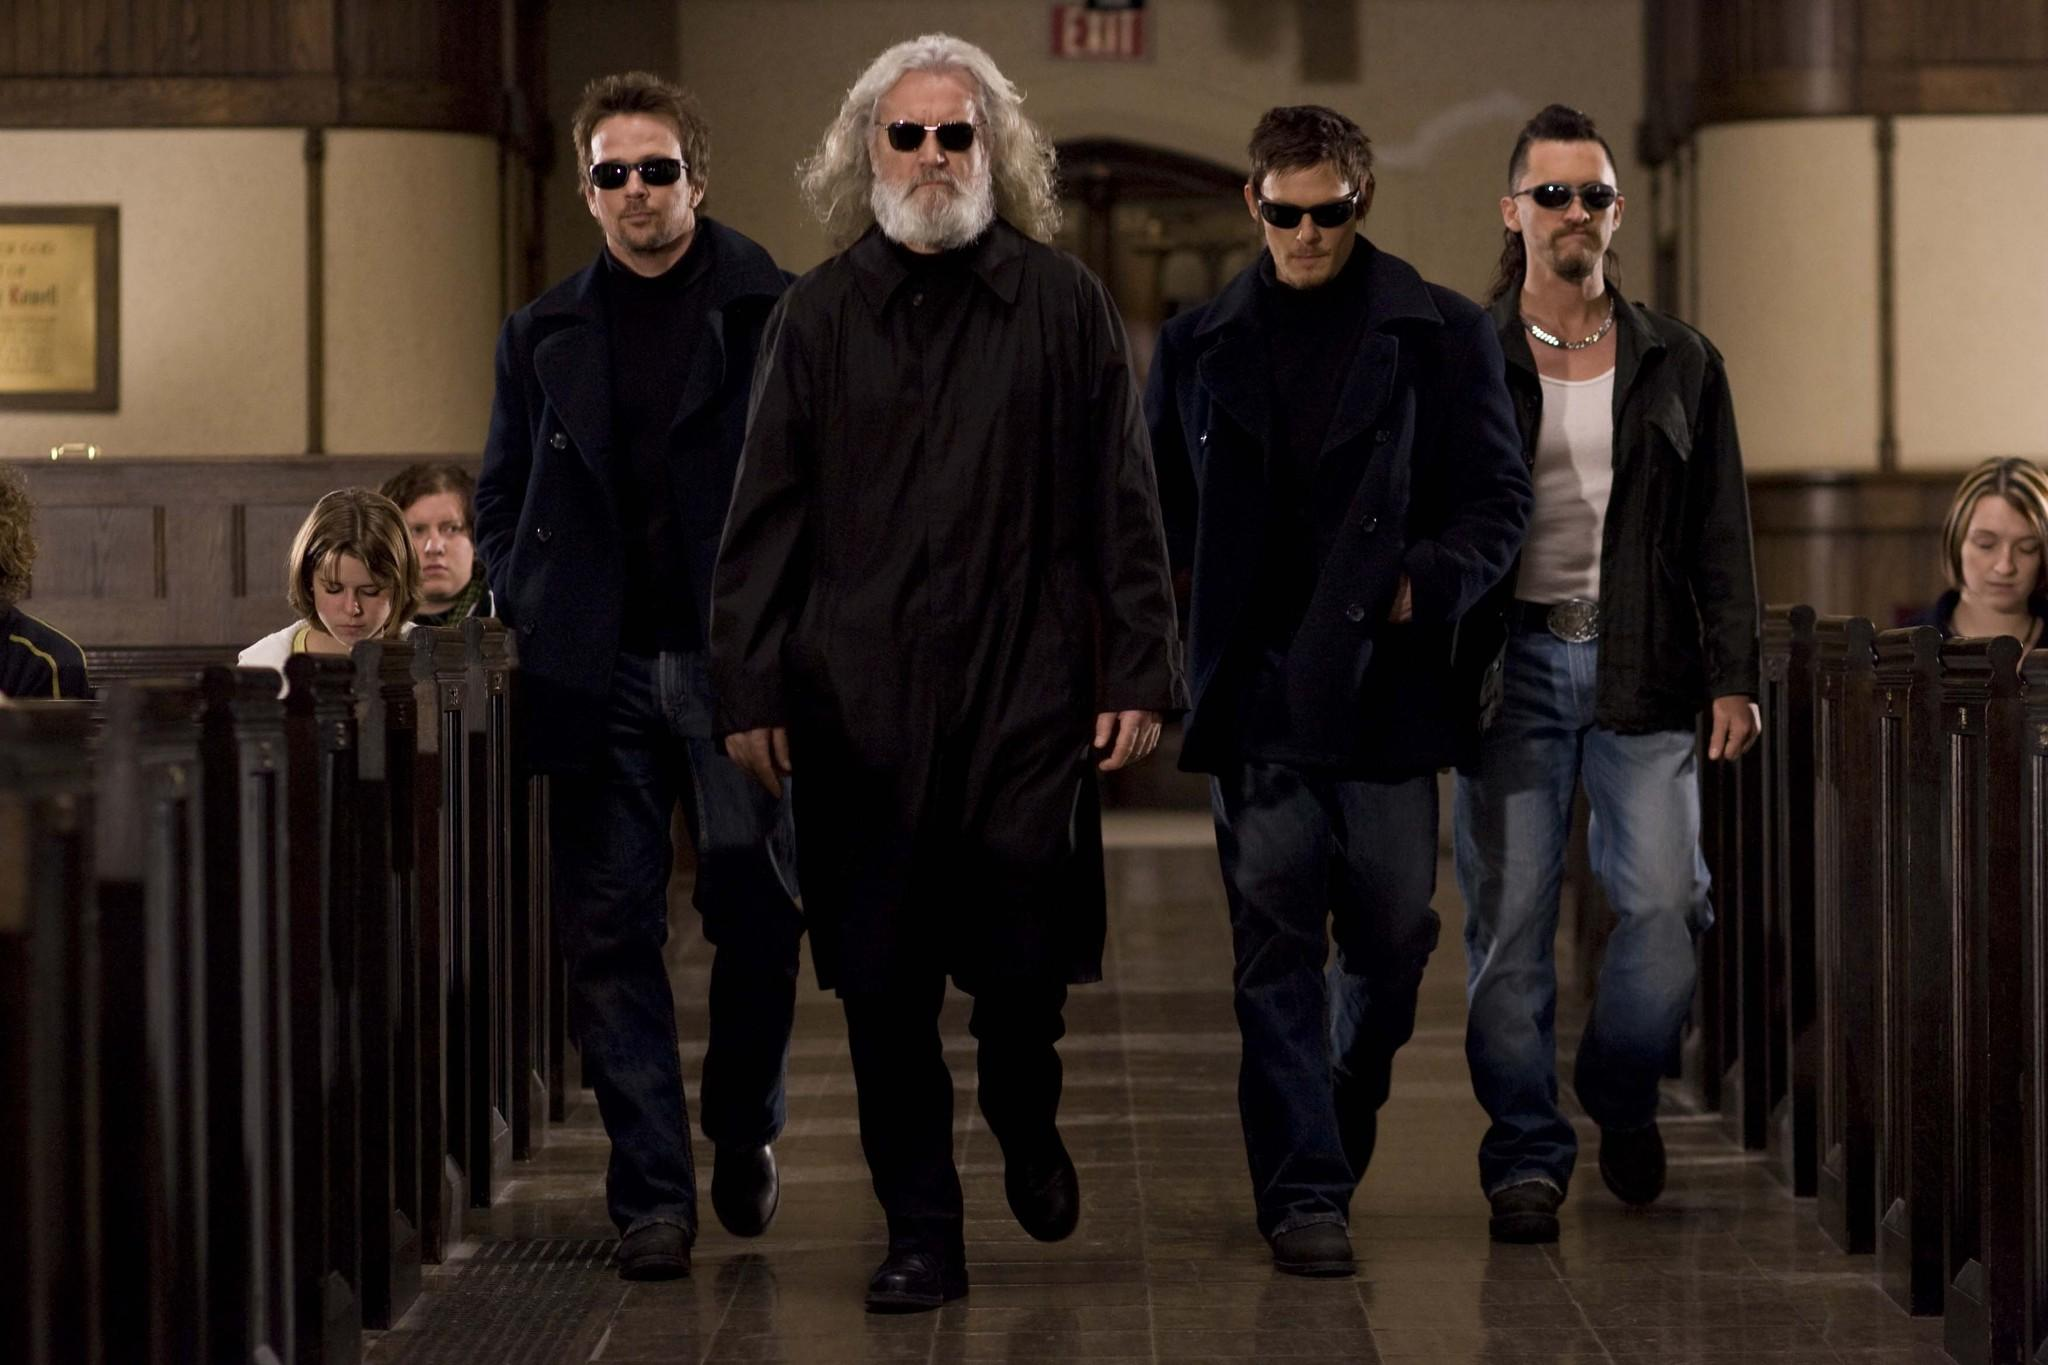 still-of-sean-patrick-flanery,-clifton-collins-jr.,-norman-reedus-and-billy-connolly-in-the-boondock-saints-ii_-all-saints-day-large-picture.jpg